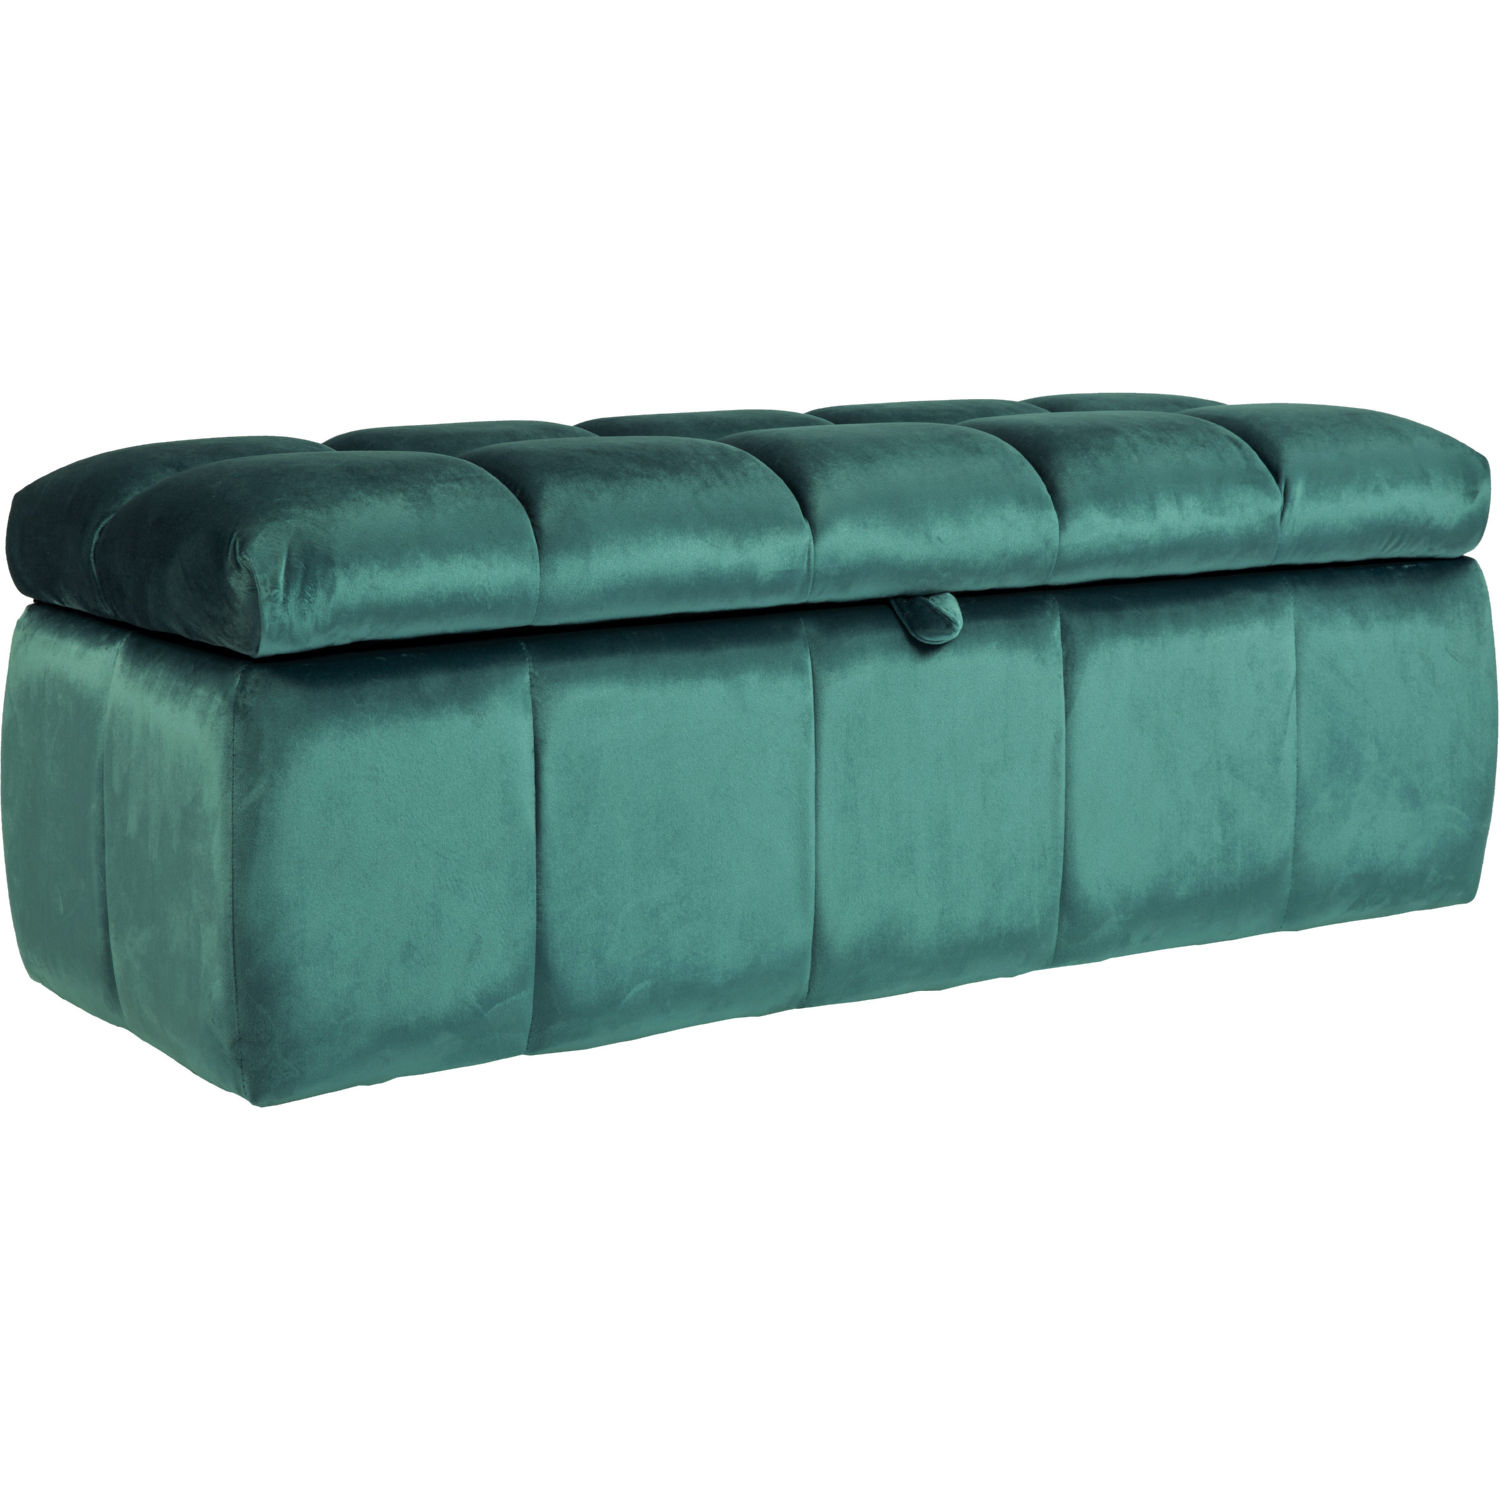 Pleasing Chagit Storage Bench Ottoman In Tufted Blue Velvet By Chic Home Bralicious Painted Fabric Chair Ideas Braliciousco